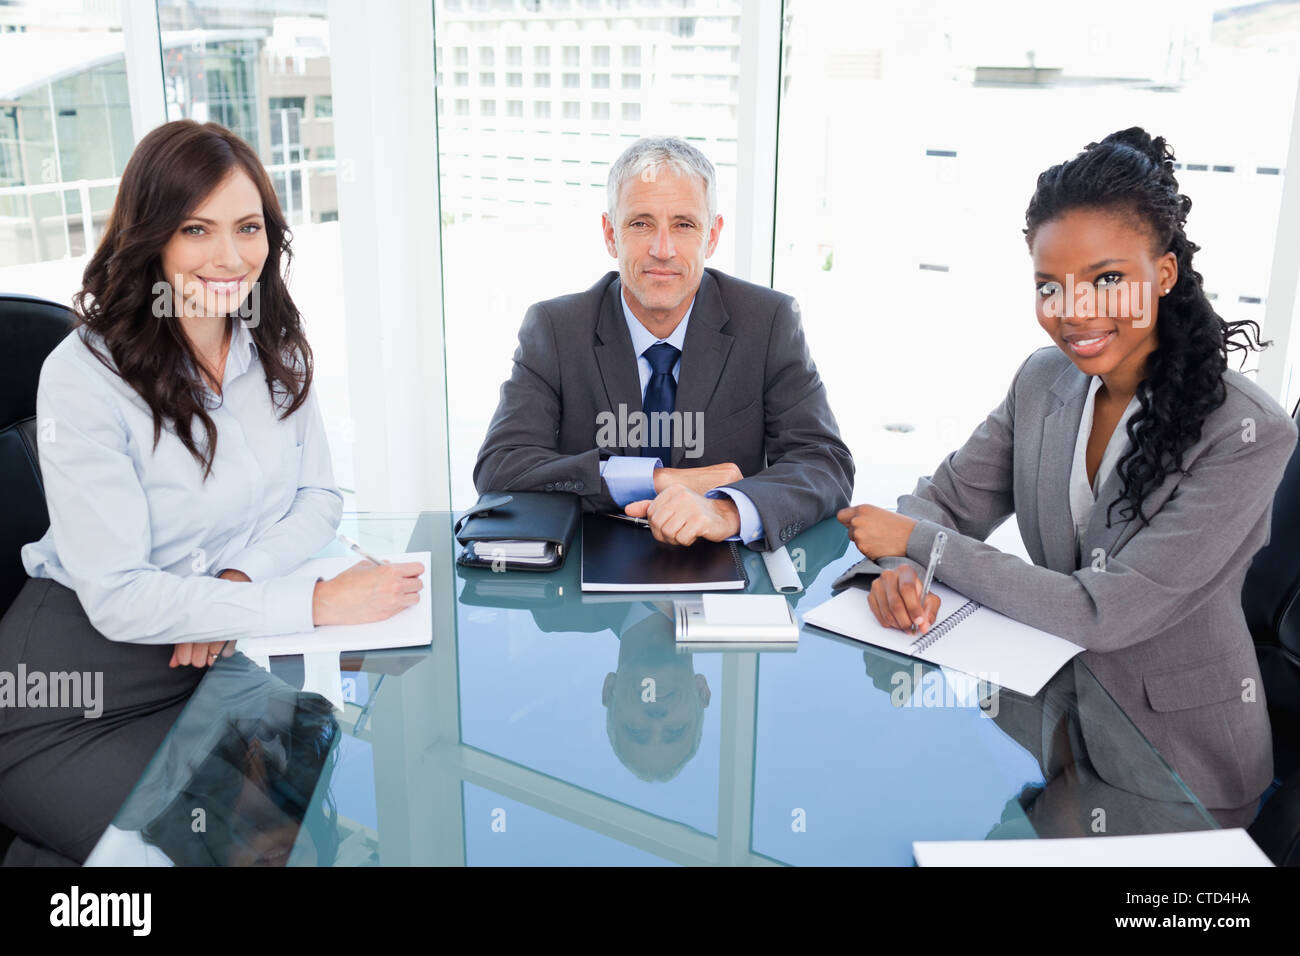 Mature director sitting at the desk and accompanied by two businesswomen - Stock Image